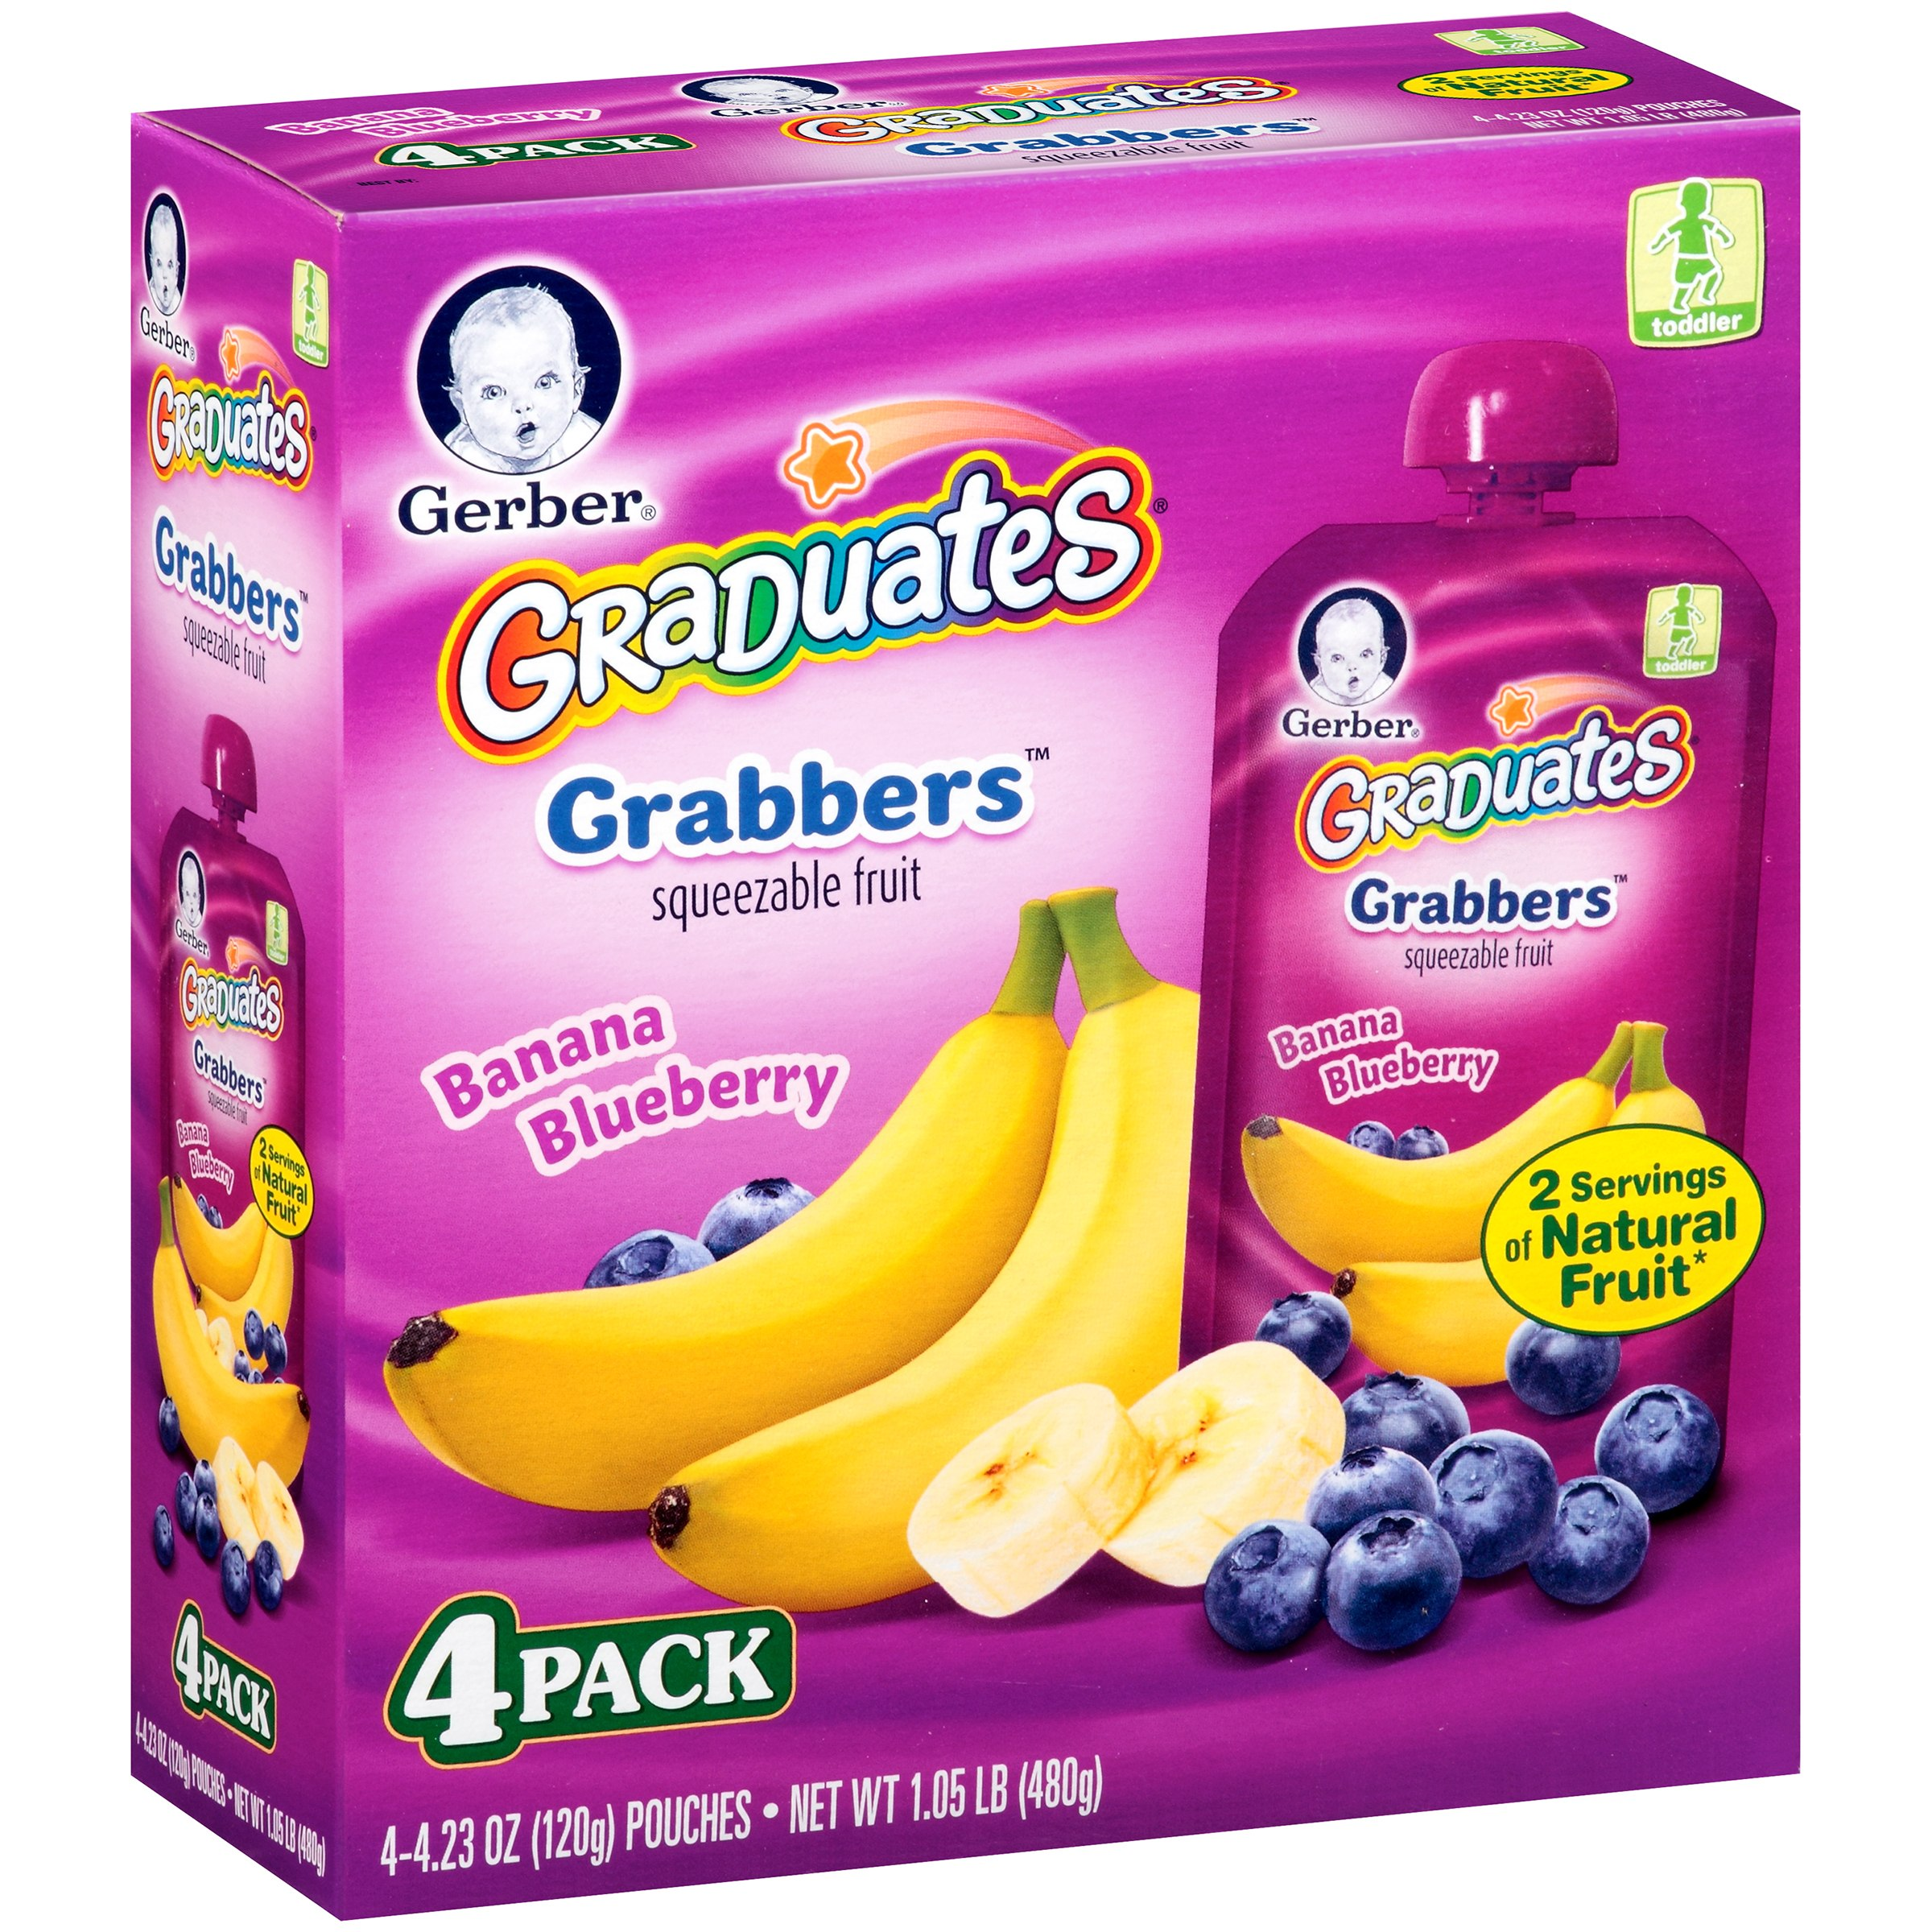 Gerber Grabbers Fruit Squeezable Puree, Banana Blueberry, 4.23 oz Pouch (Pack of 4)